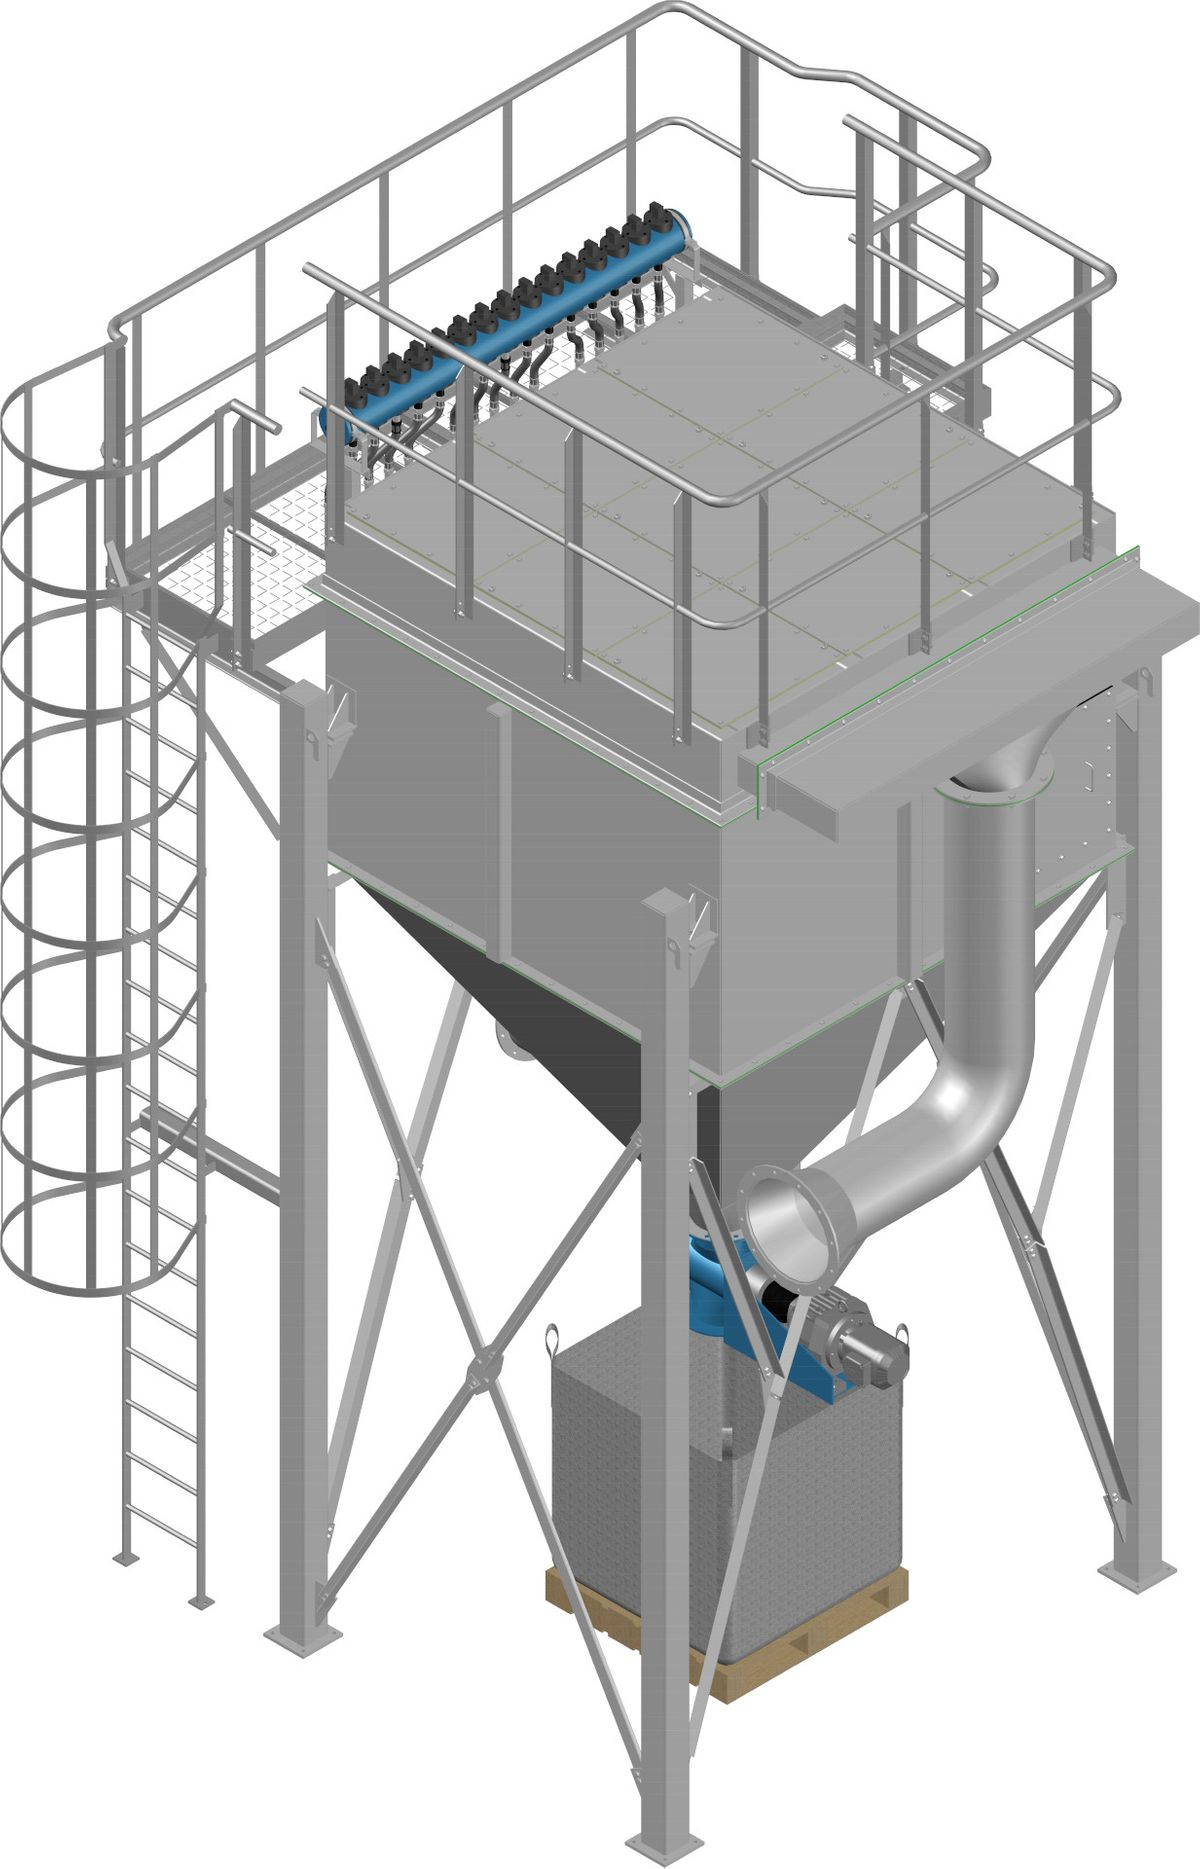 High efficiency flue gas filter plant module